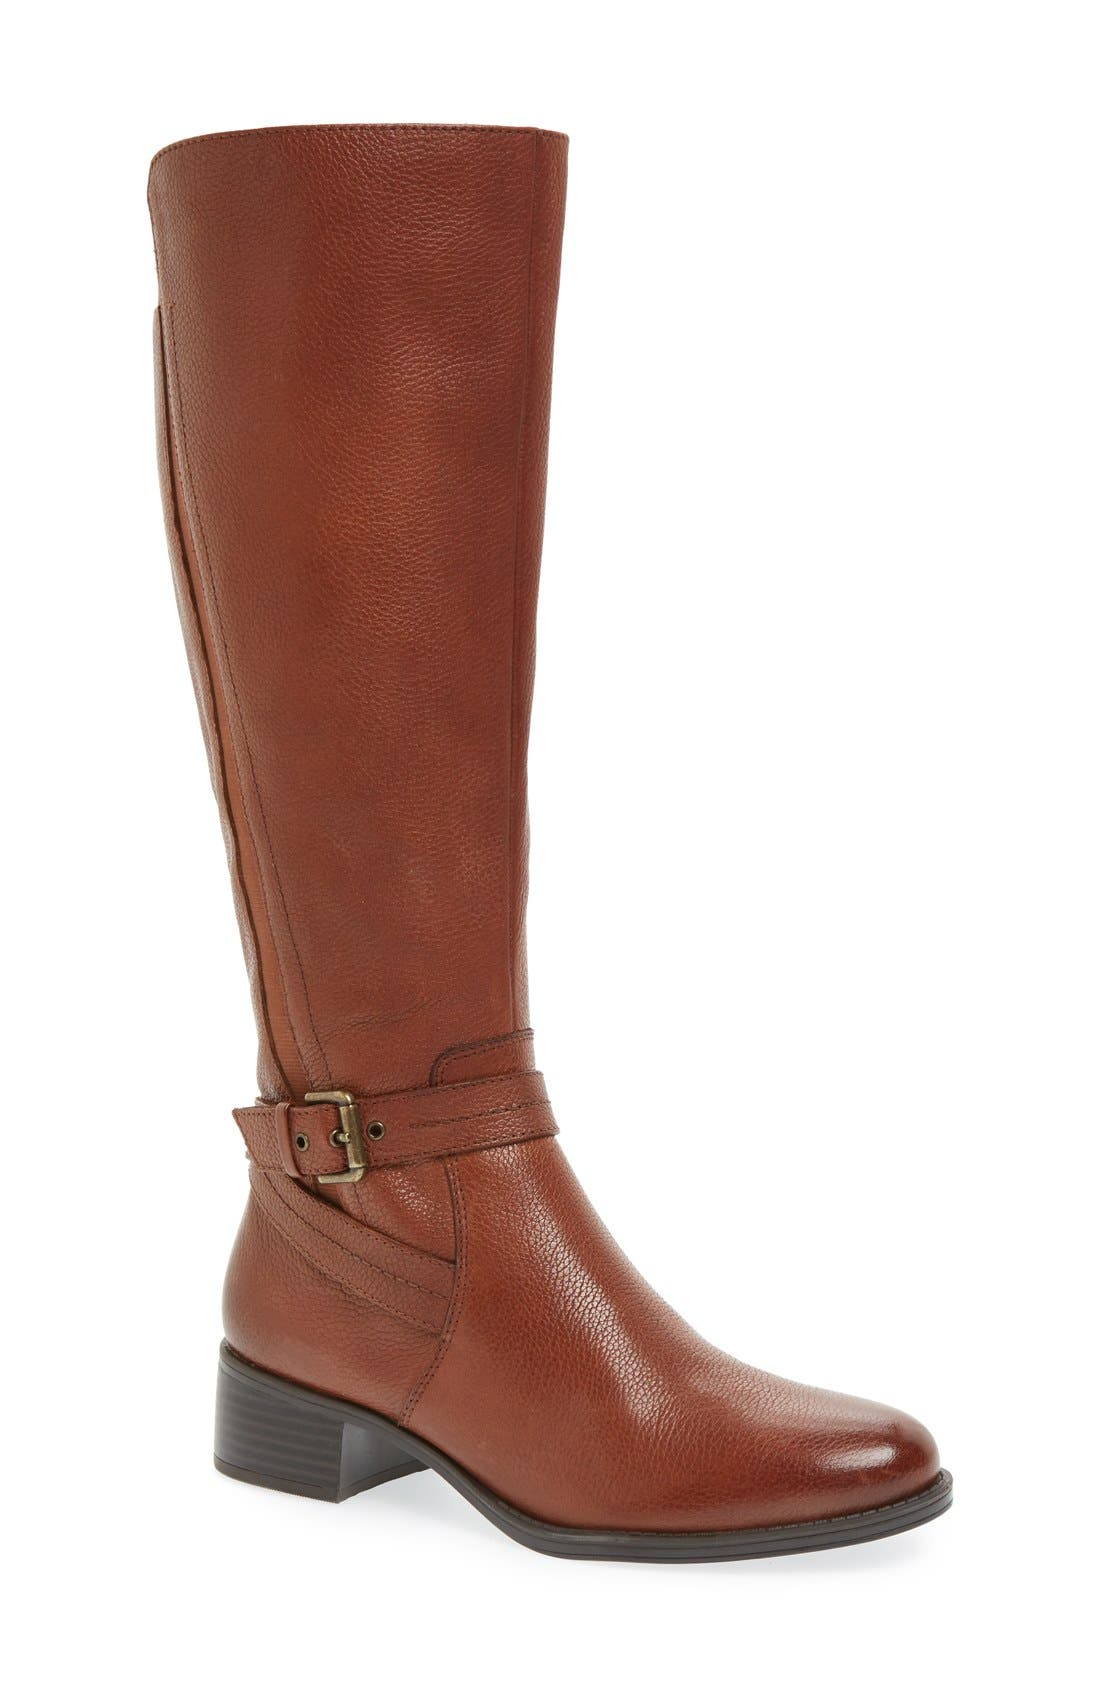 'Jelina' Riding Boot,                             Main thumbnail 1, color,                             Brown Leather